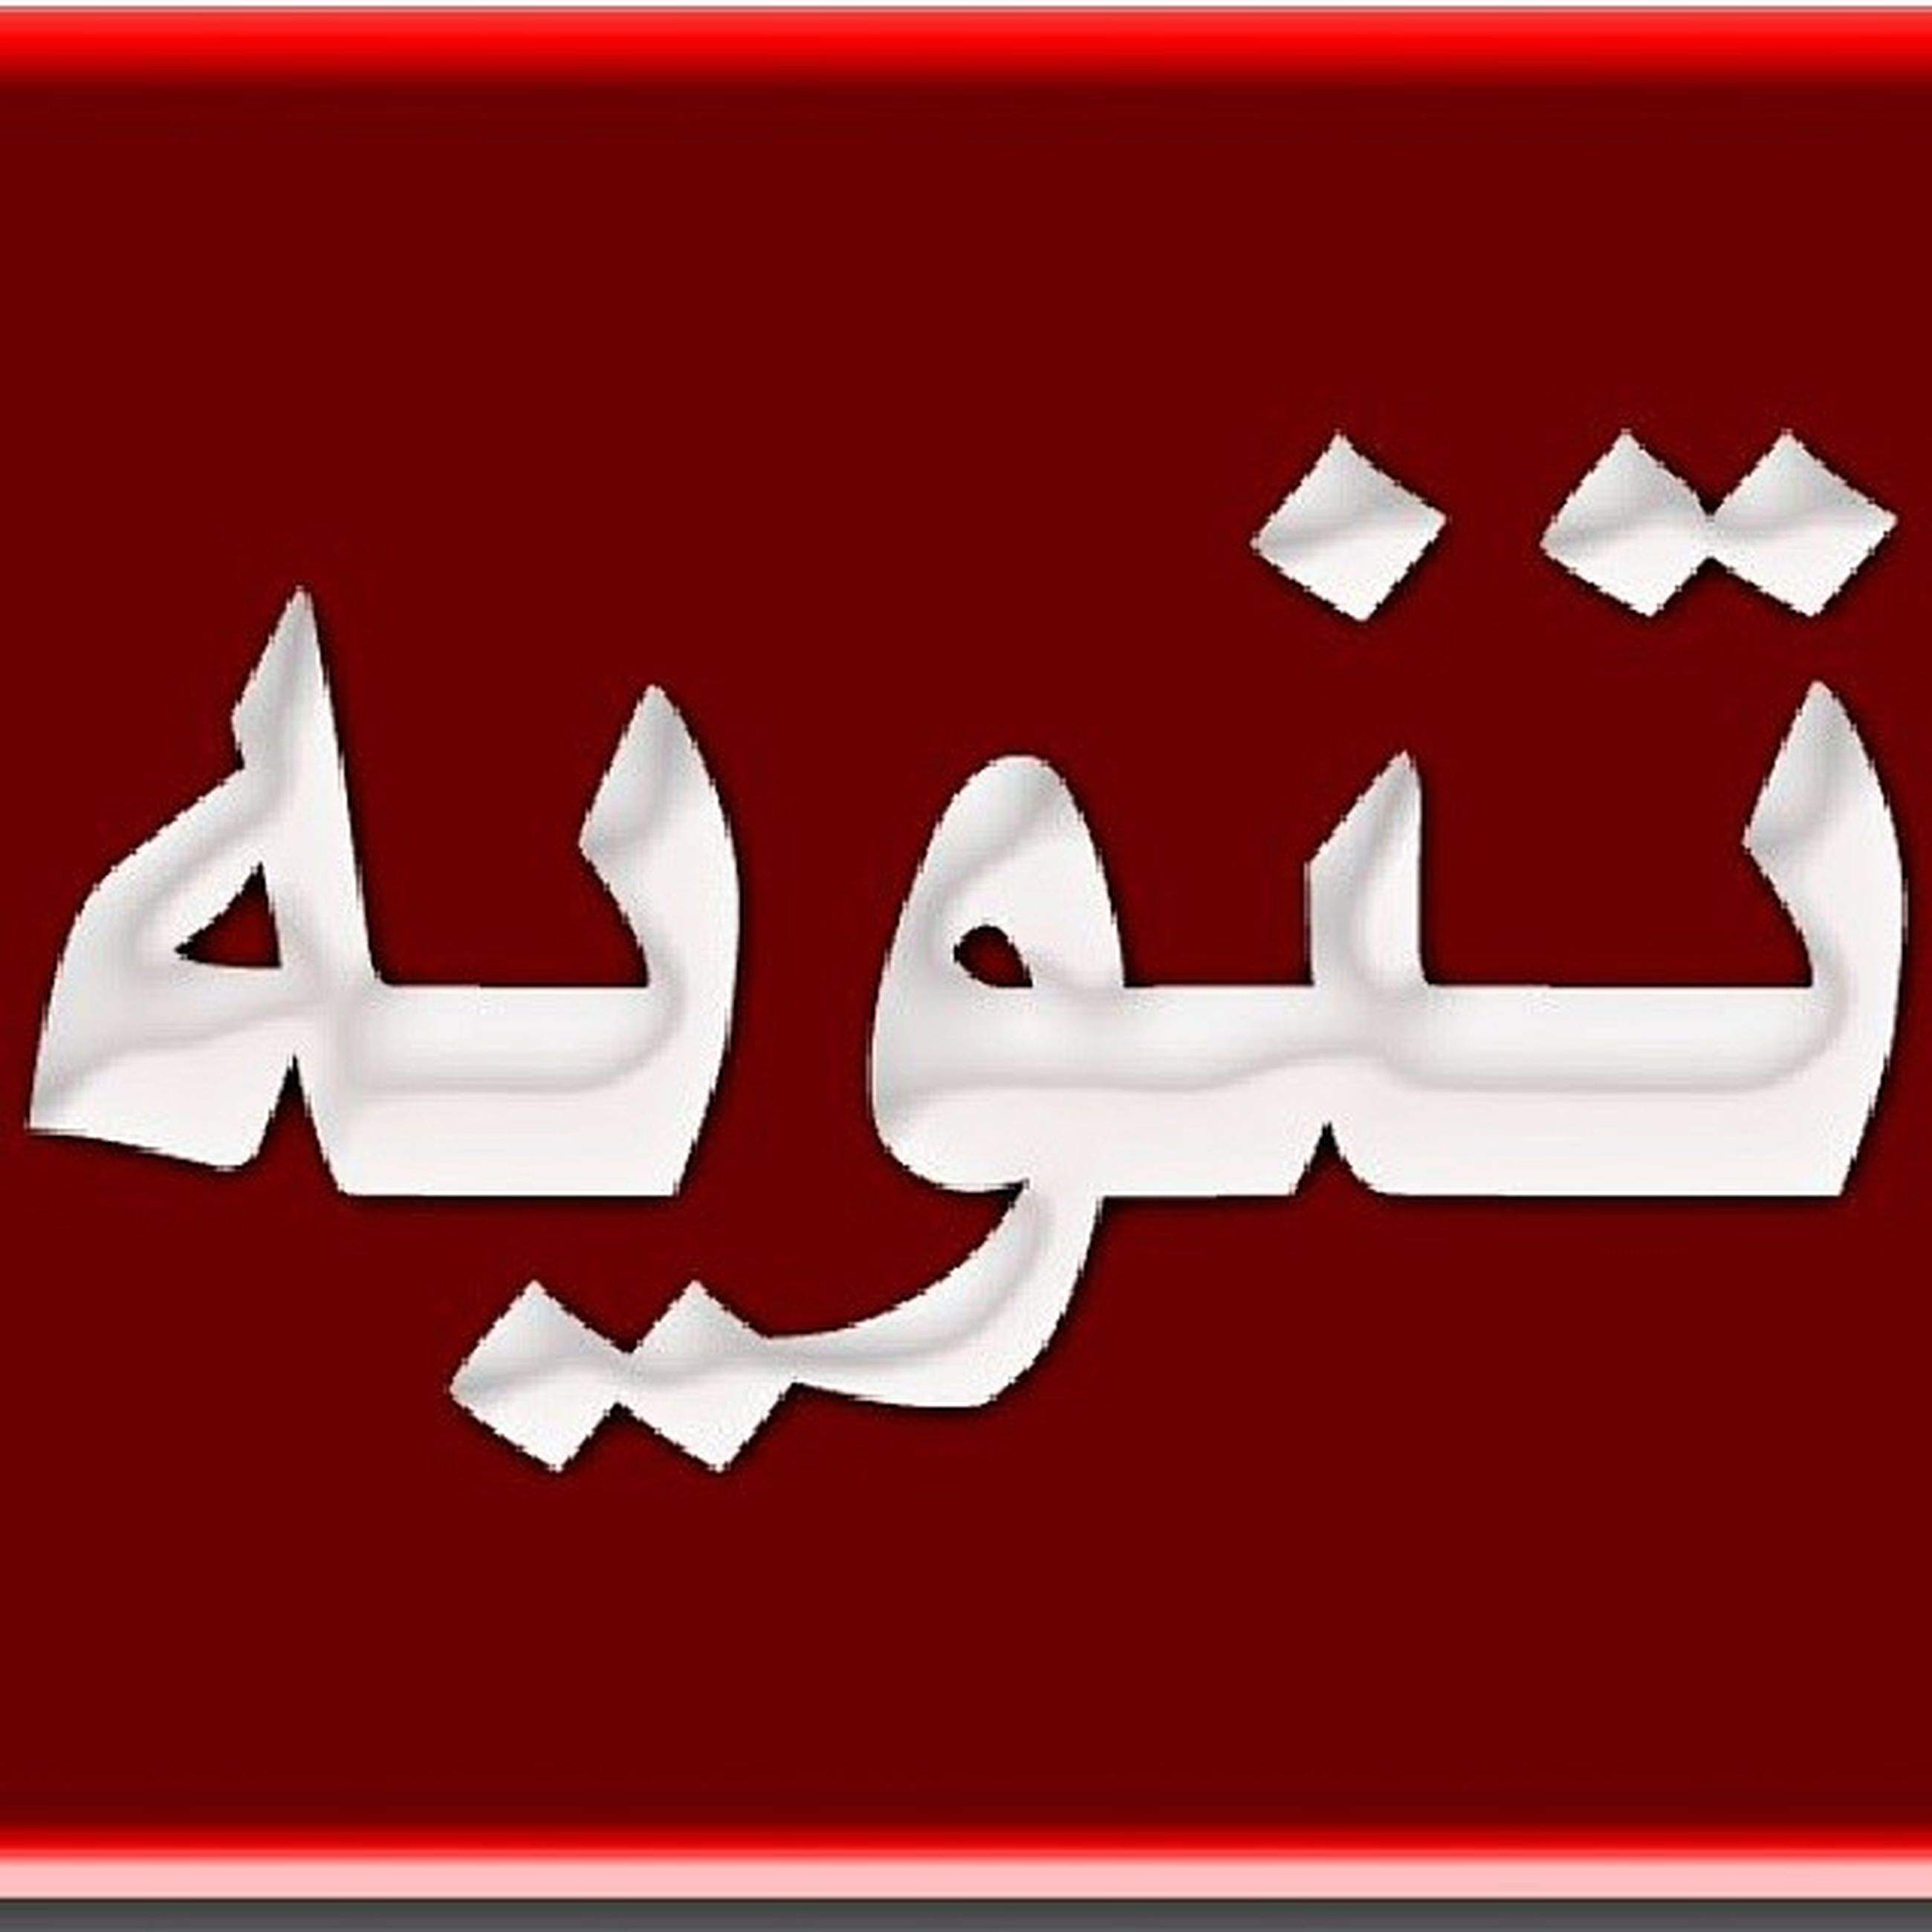 red, text, art and craft, creativity, art, western script, communication, indoors, architecture, human representation, white color, built structure, wall - building feature, close-up, wall, no people, copy space, pattern, capital letter